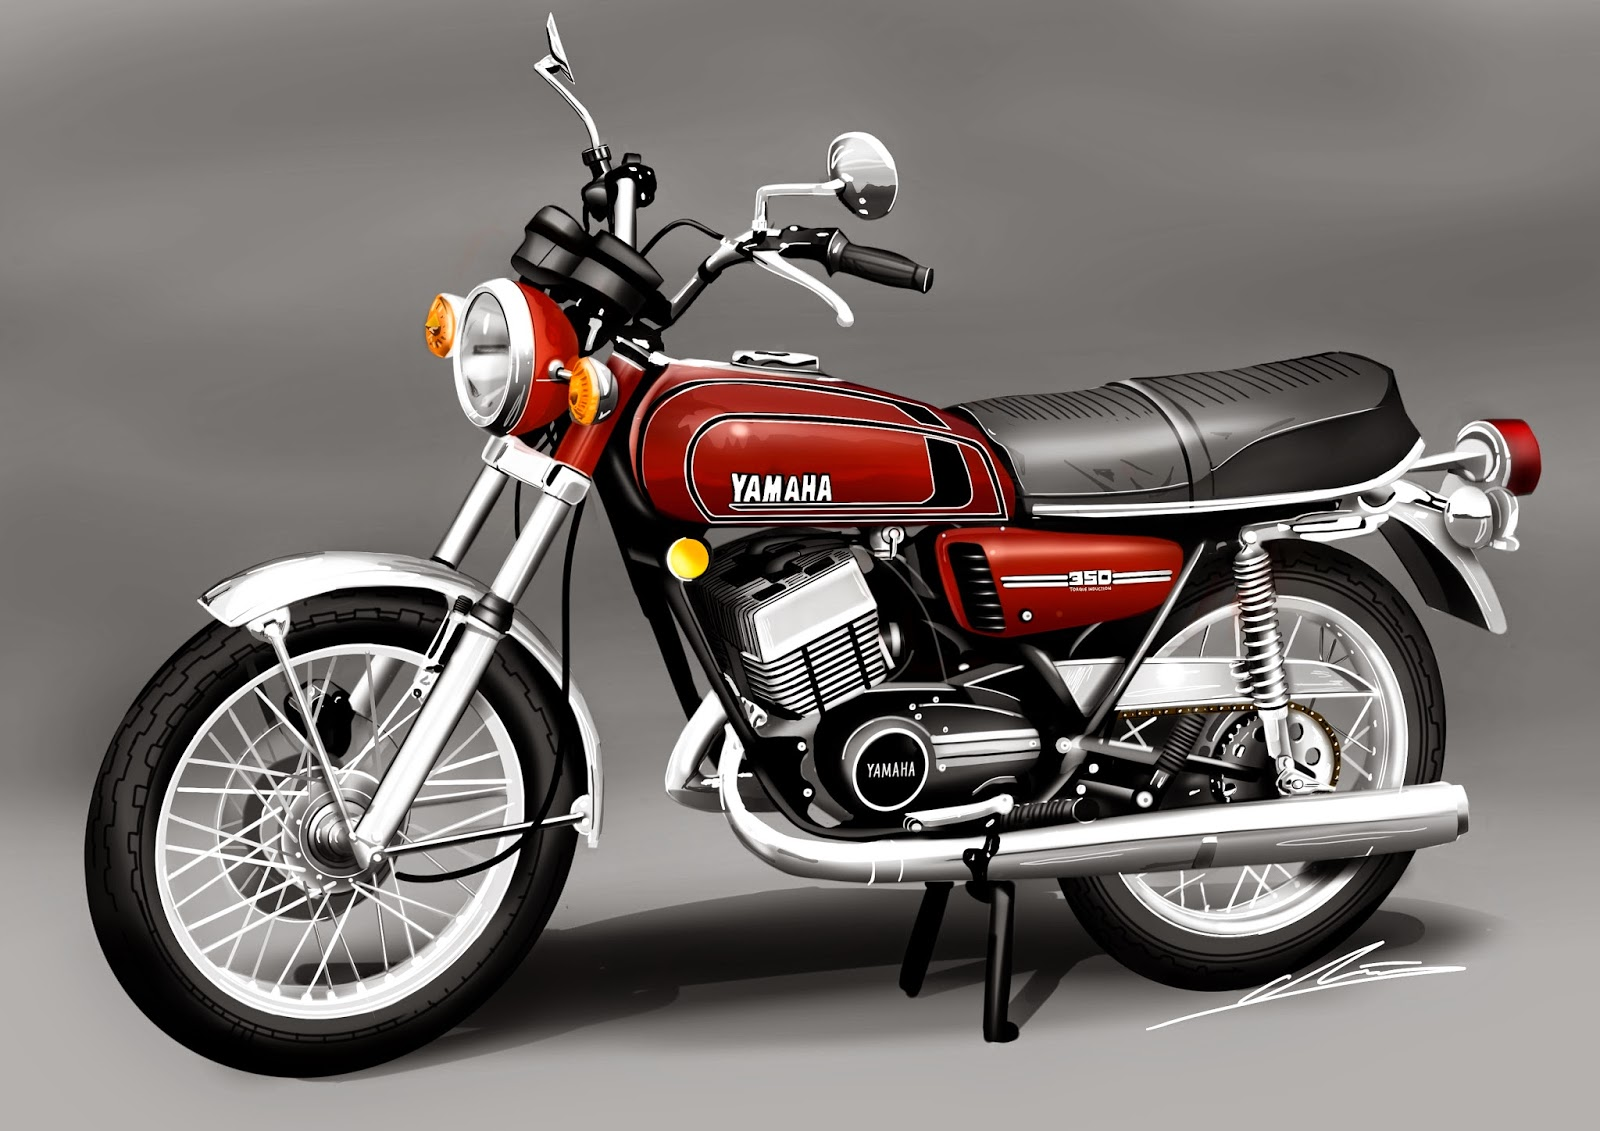 Yamaha 350 photo - 3